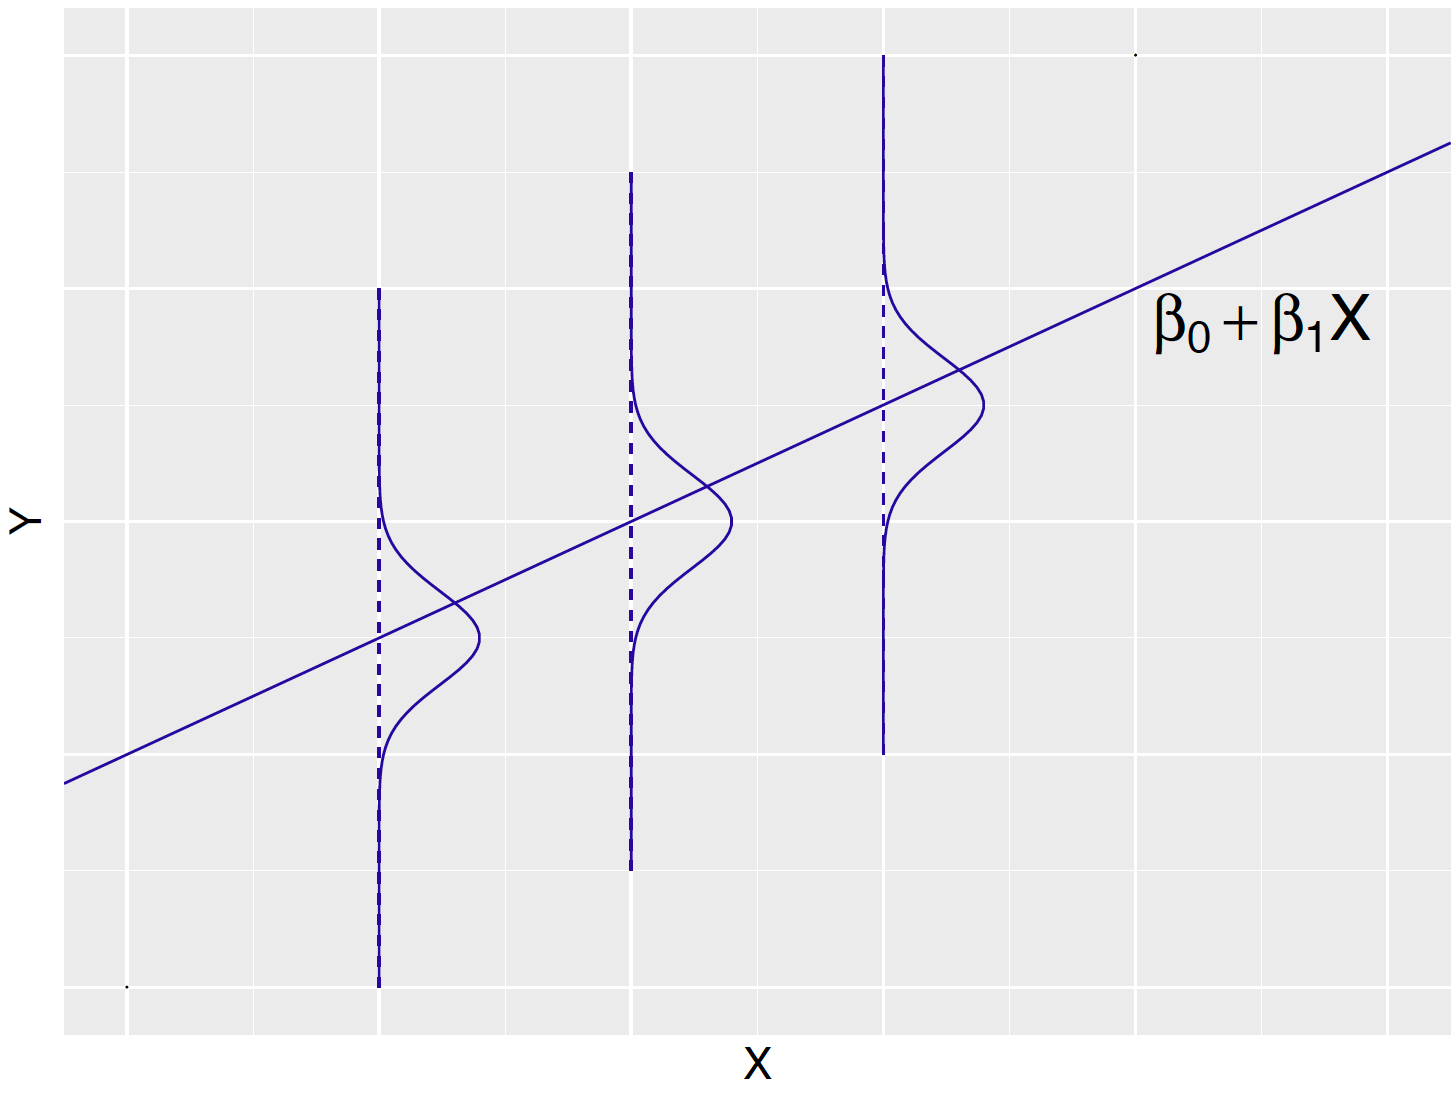 Display of linear regression model.  The line represents the unknown regression line $b_0 + b_1 x$ and the Normal curves (drawn sideways) represent the distribution of the response $Y$ about the line.